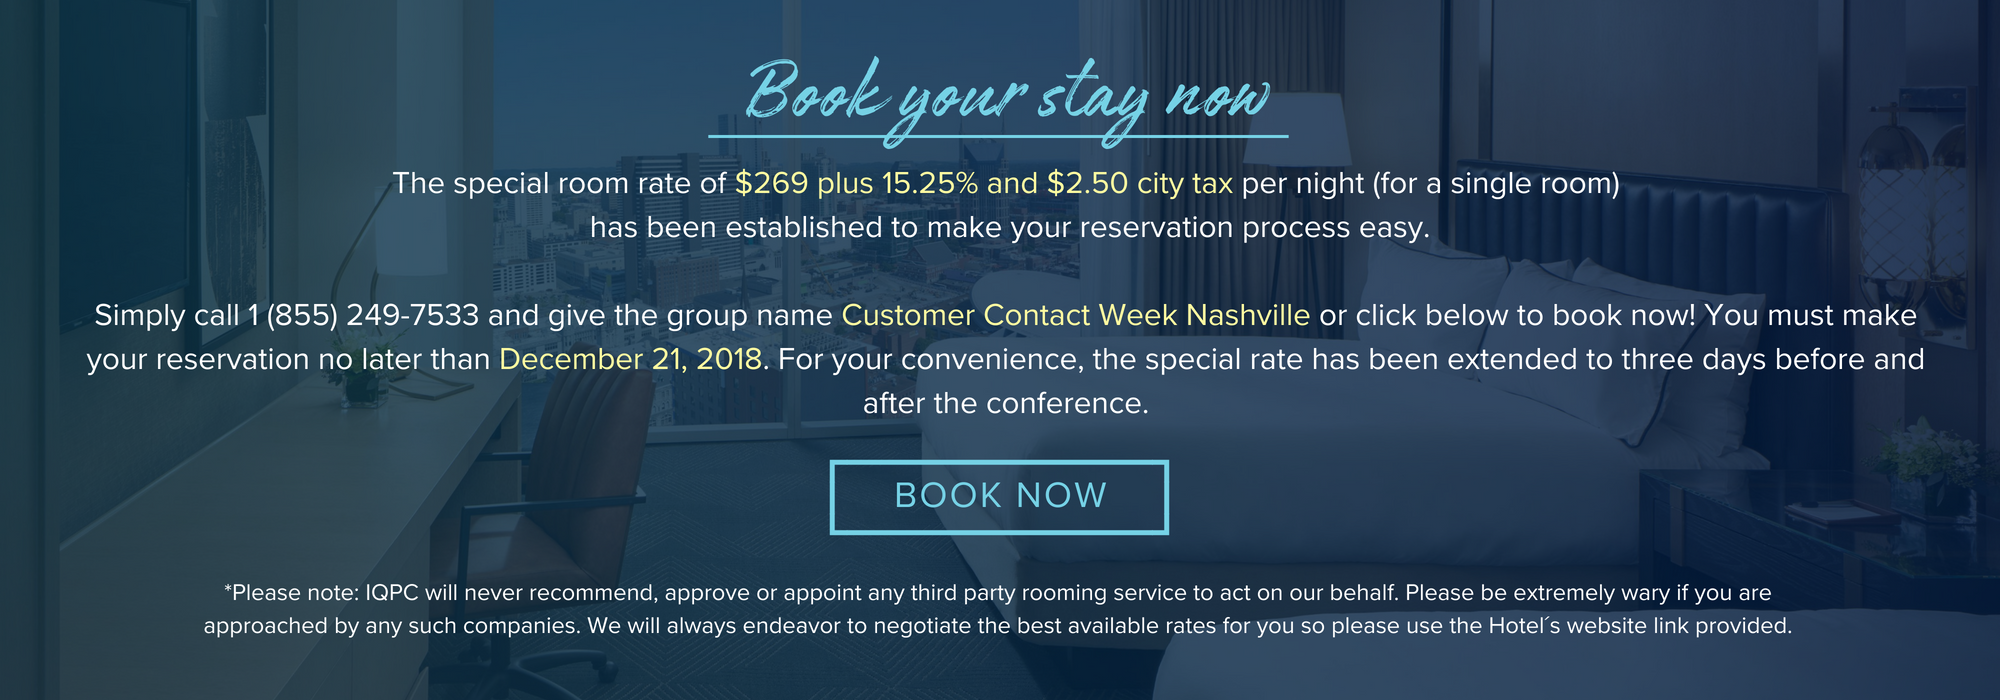 Customer Contact Week Nashville JW Marriott Pricing